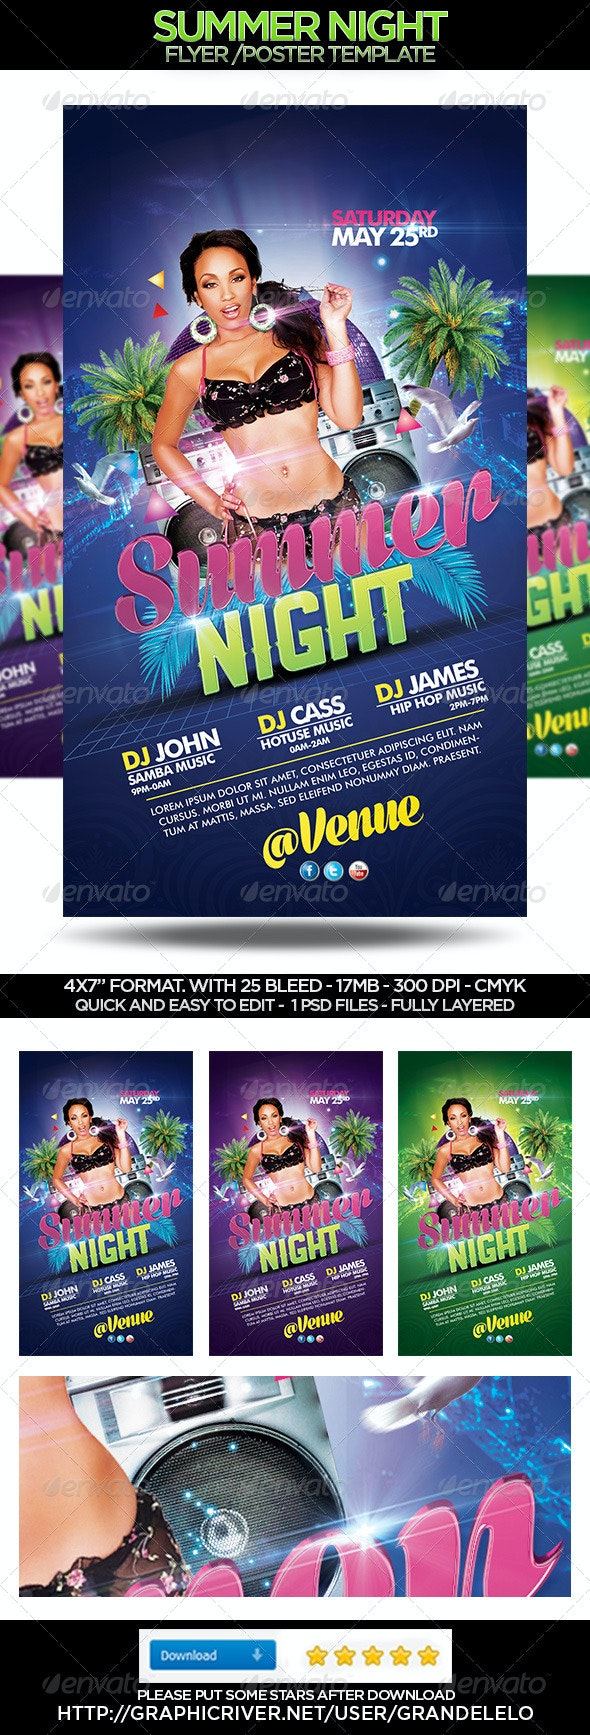 Summer Night Flyer Template - Clubs & Parties Events